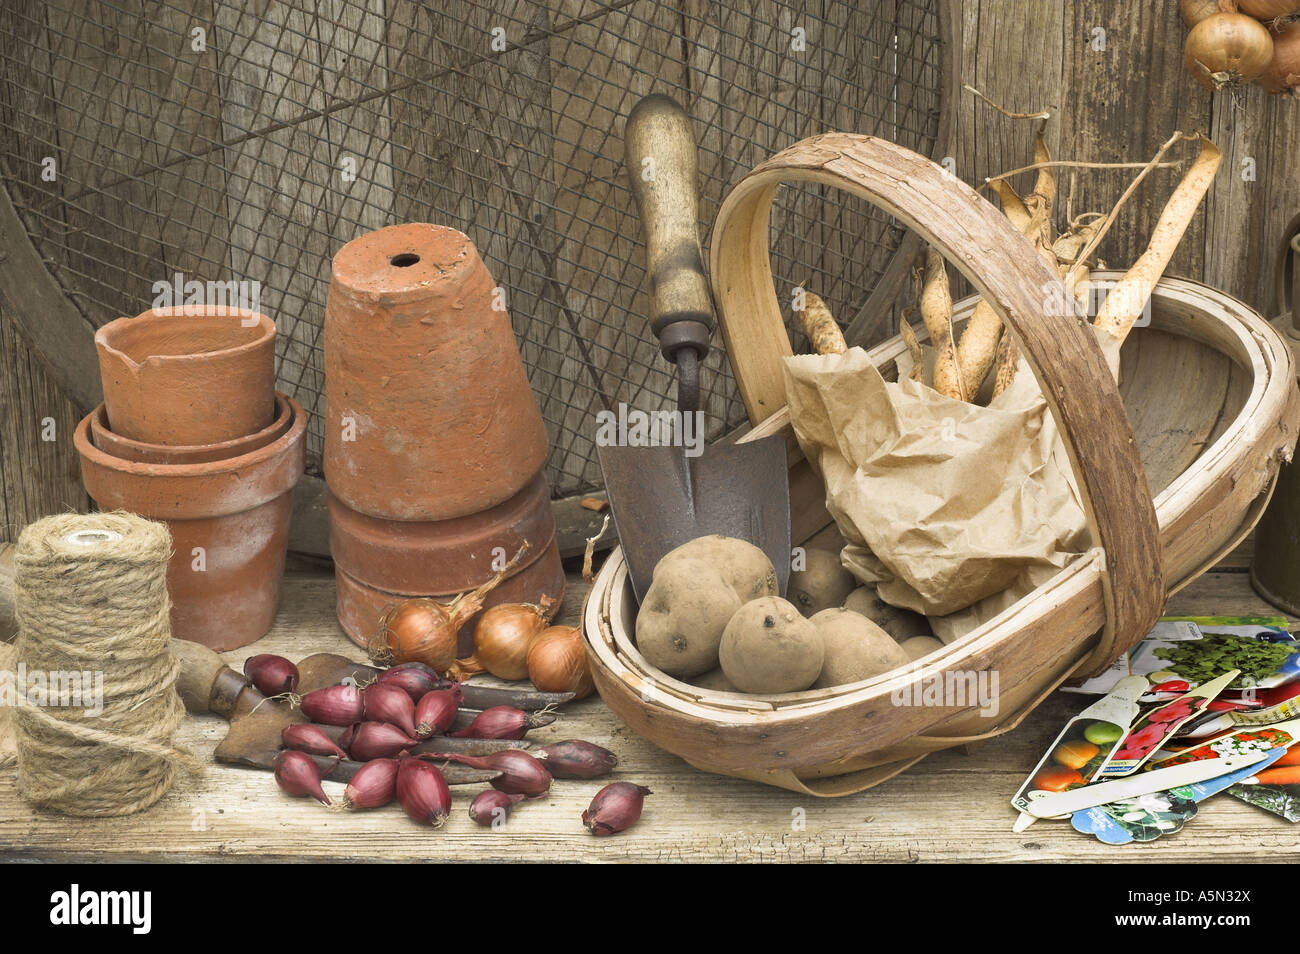 Rustic Potting Shed Still Life With Garden Tools Onion